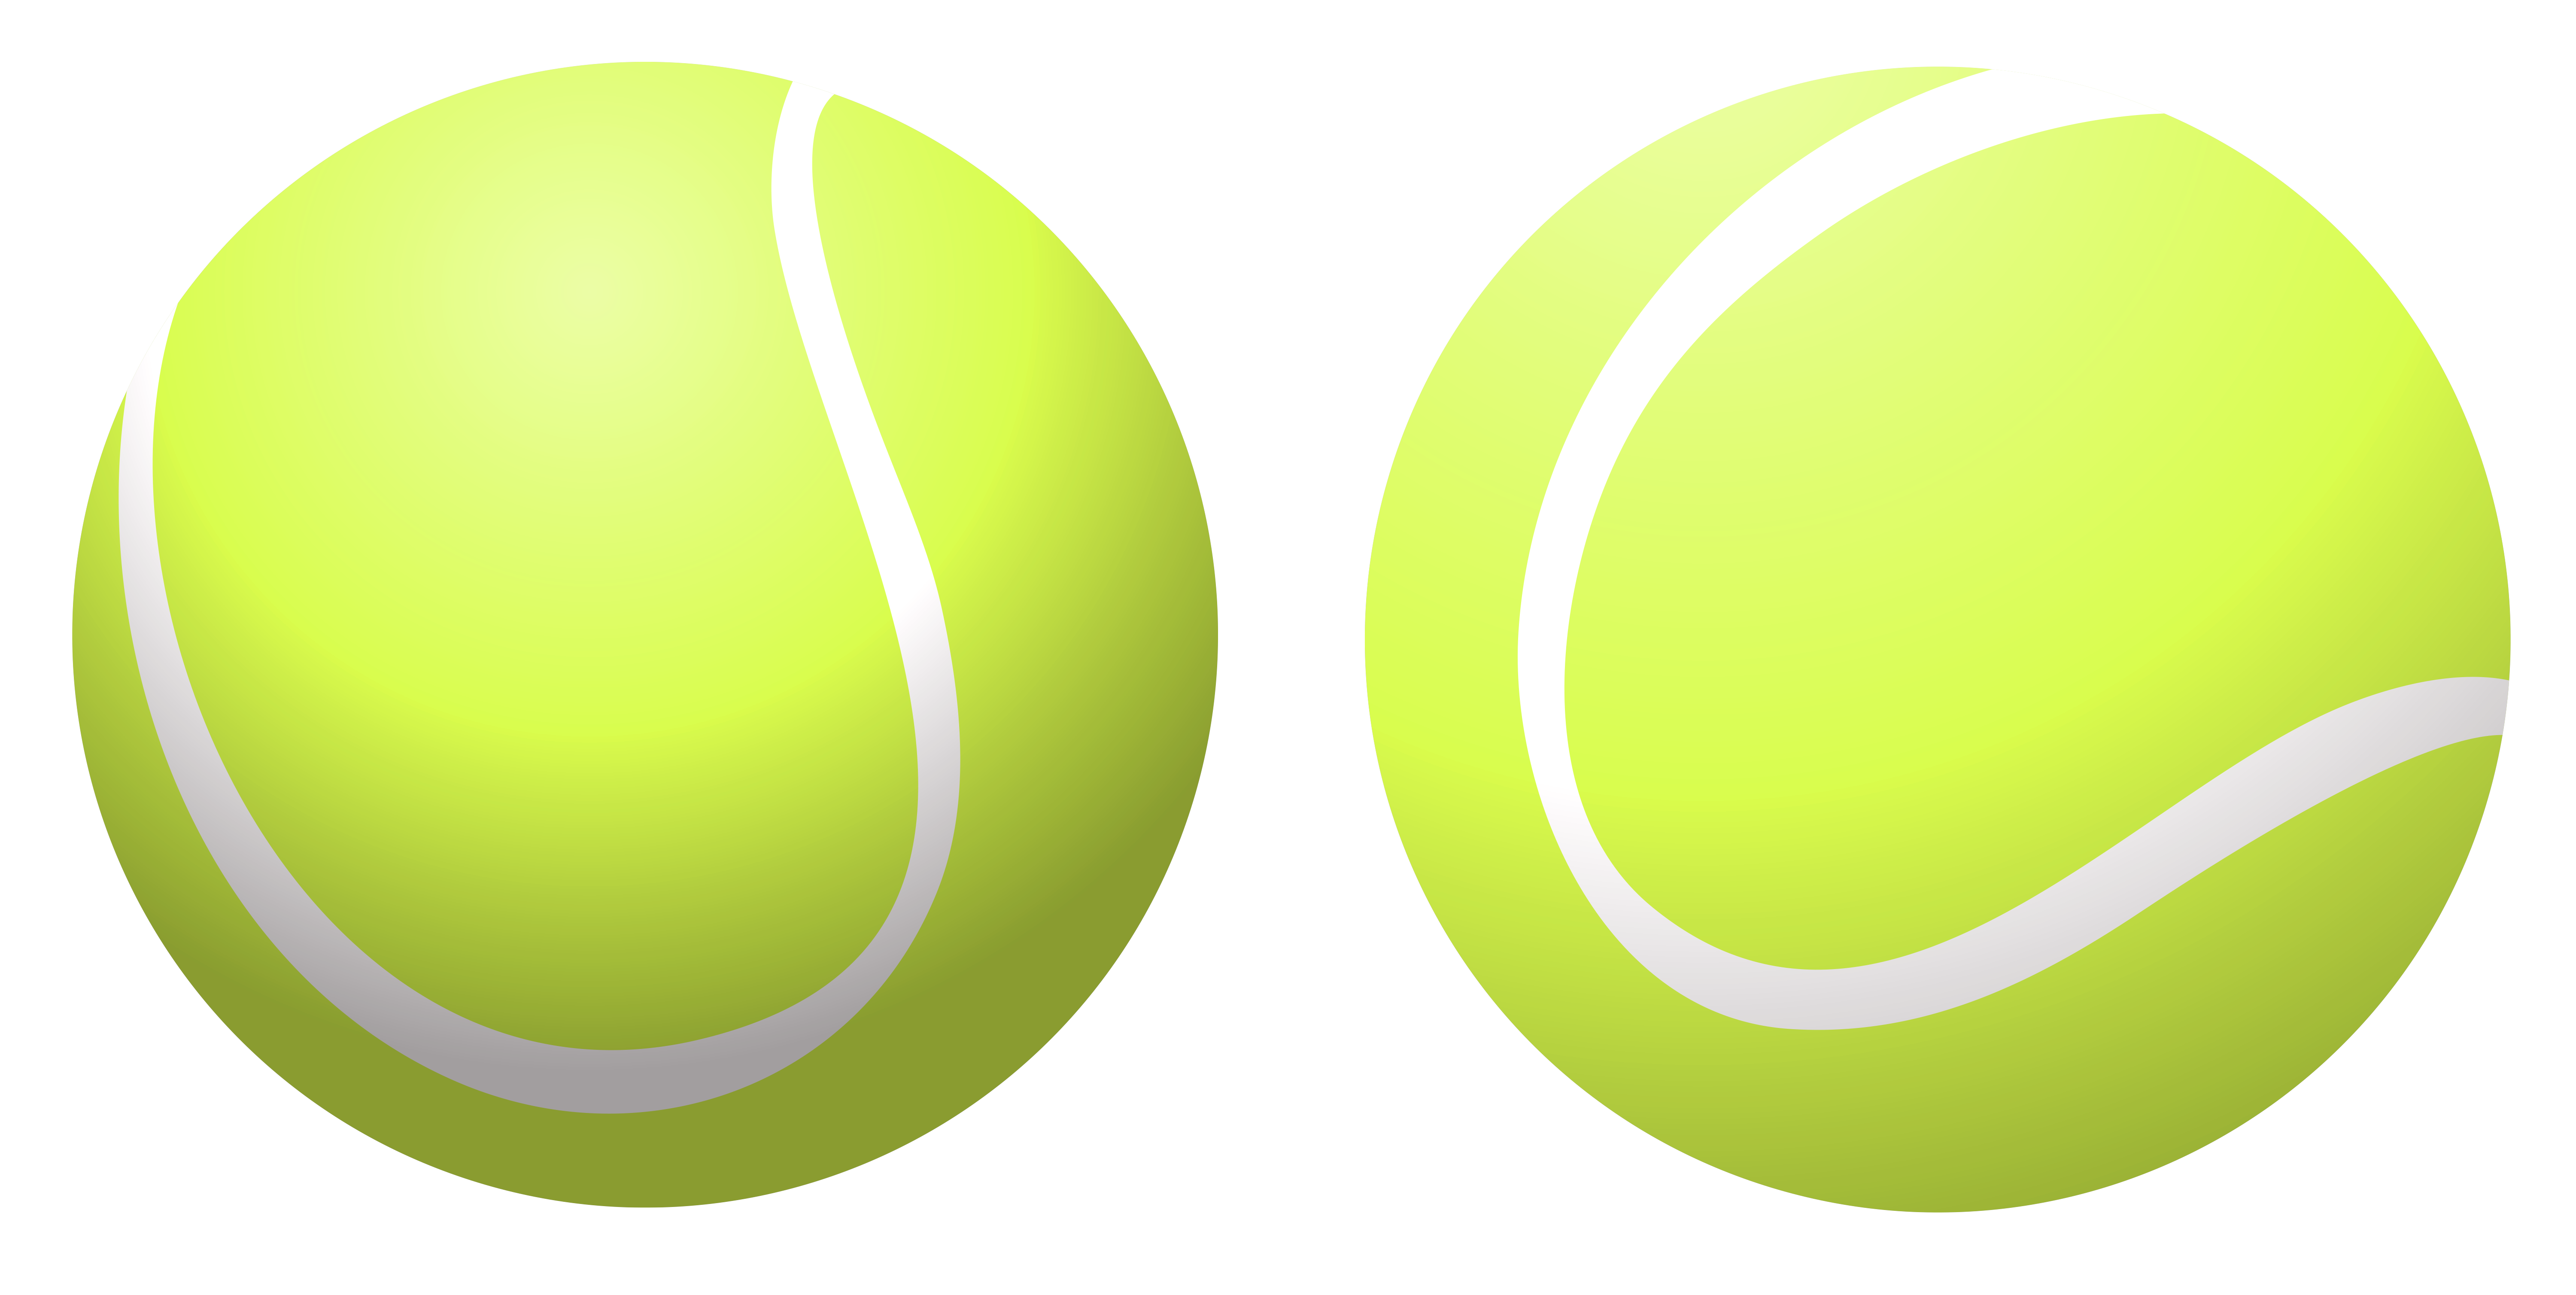 image library download Ball png pictur gallery. Tennis balls clipart.